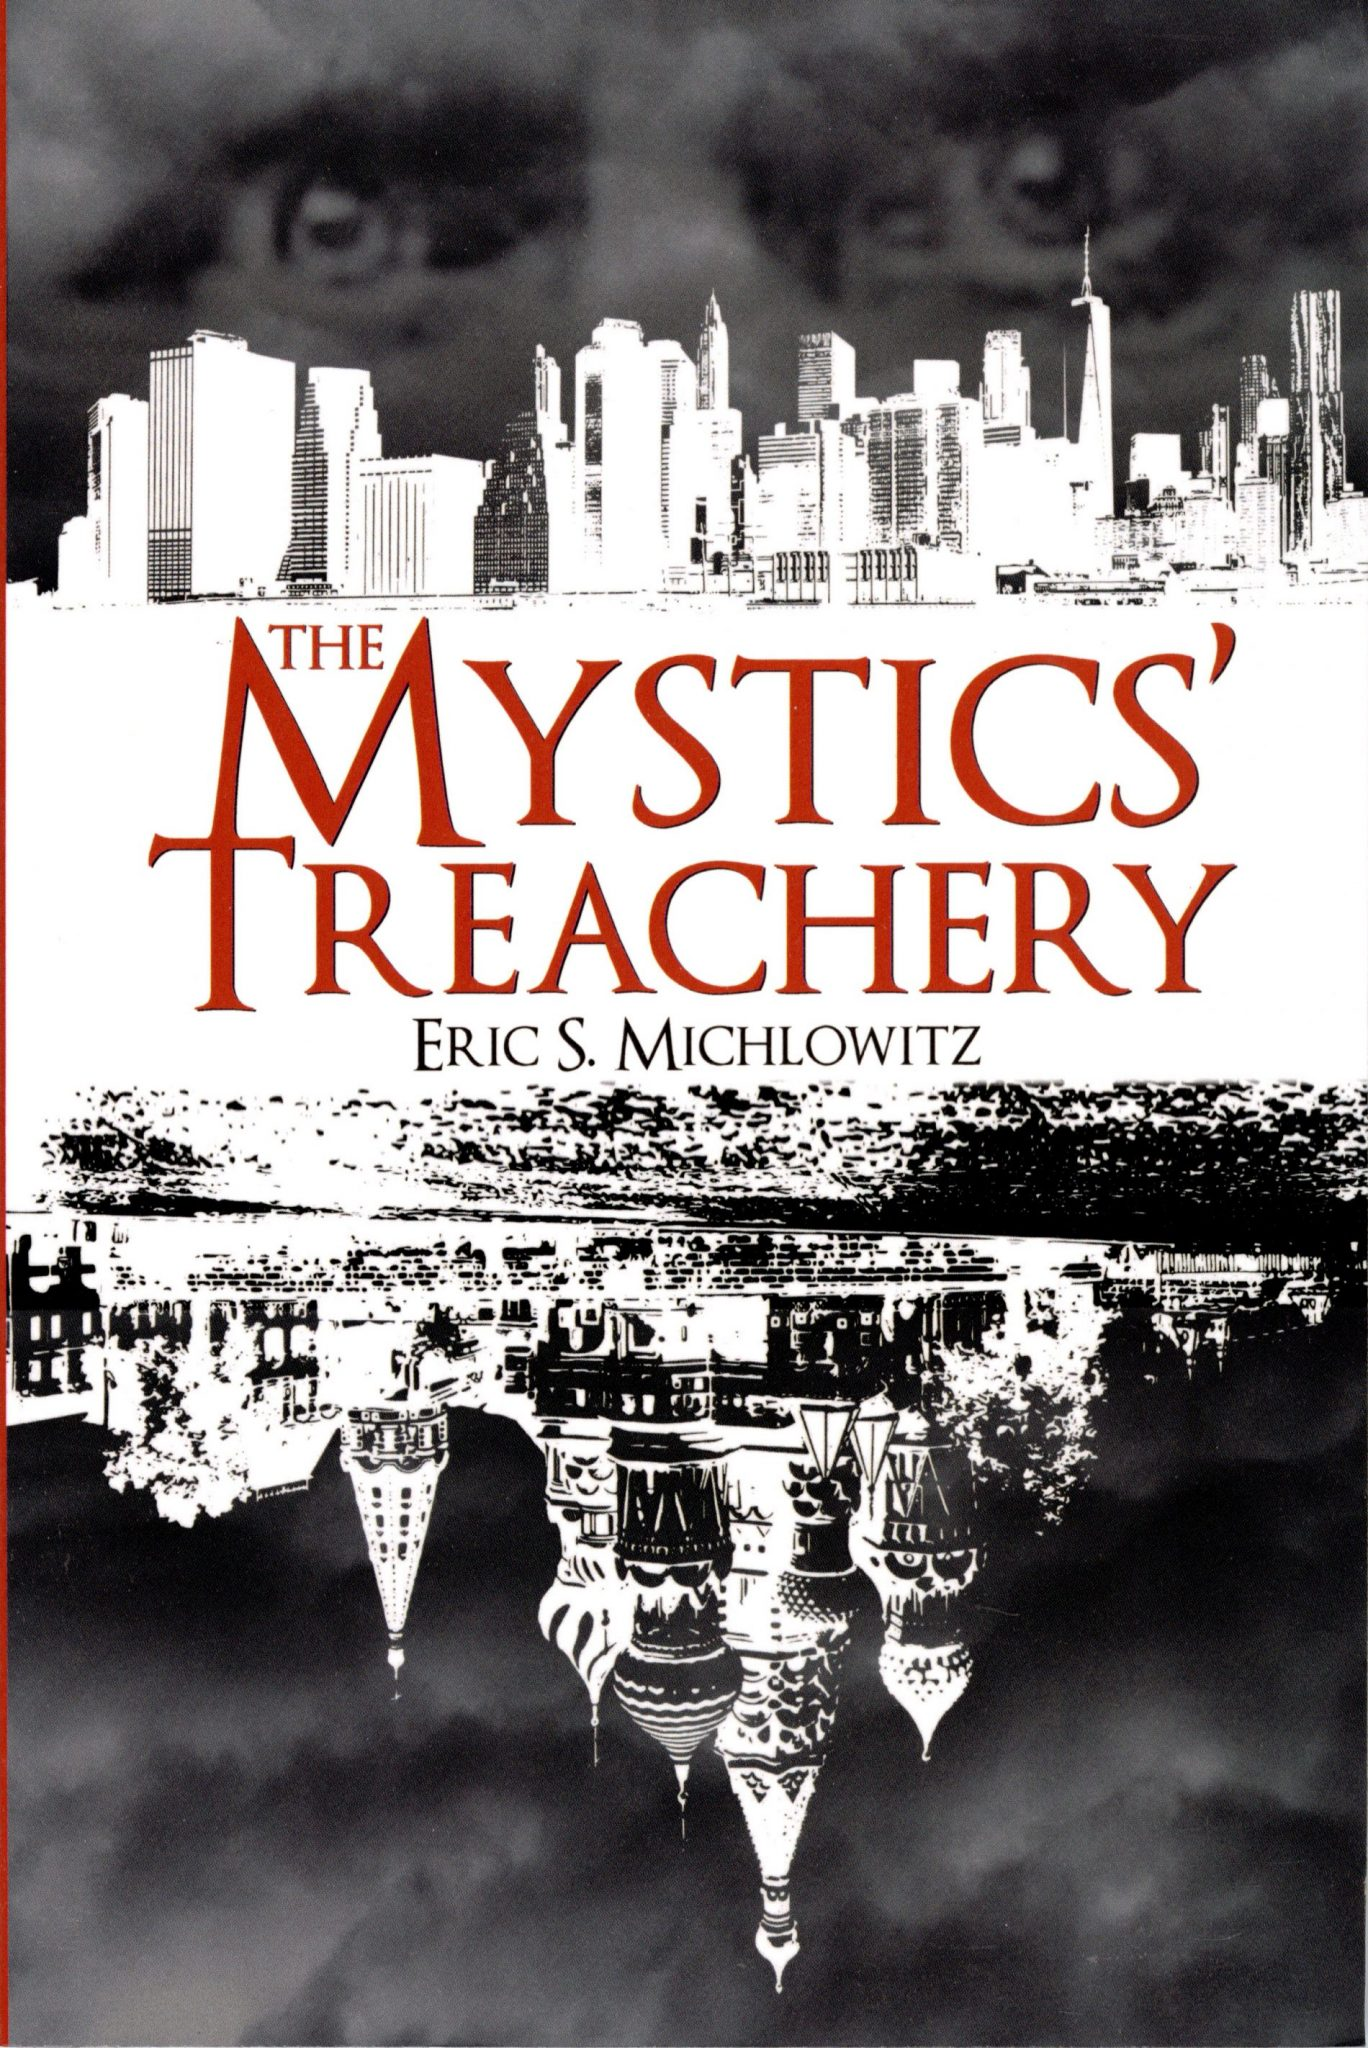 The Mystics' Treachery cover